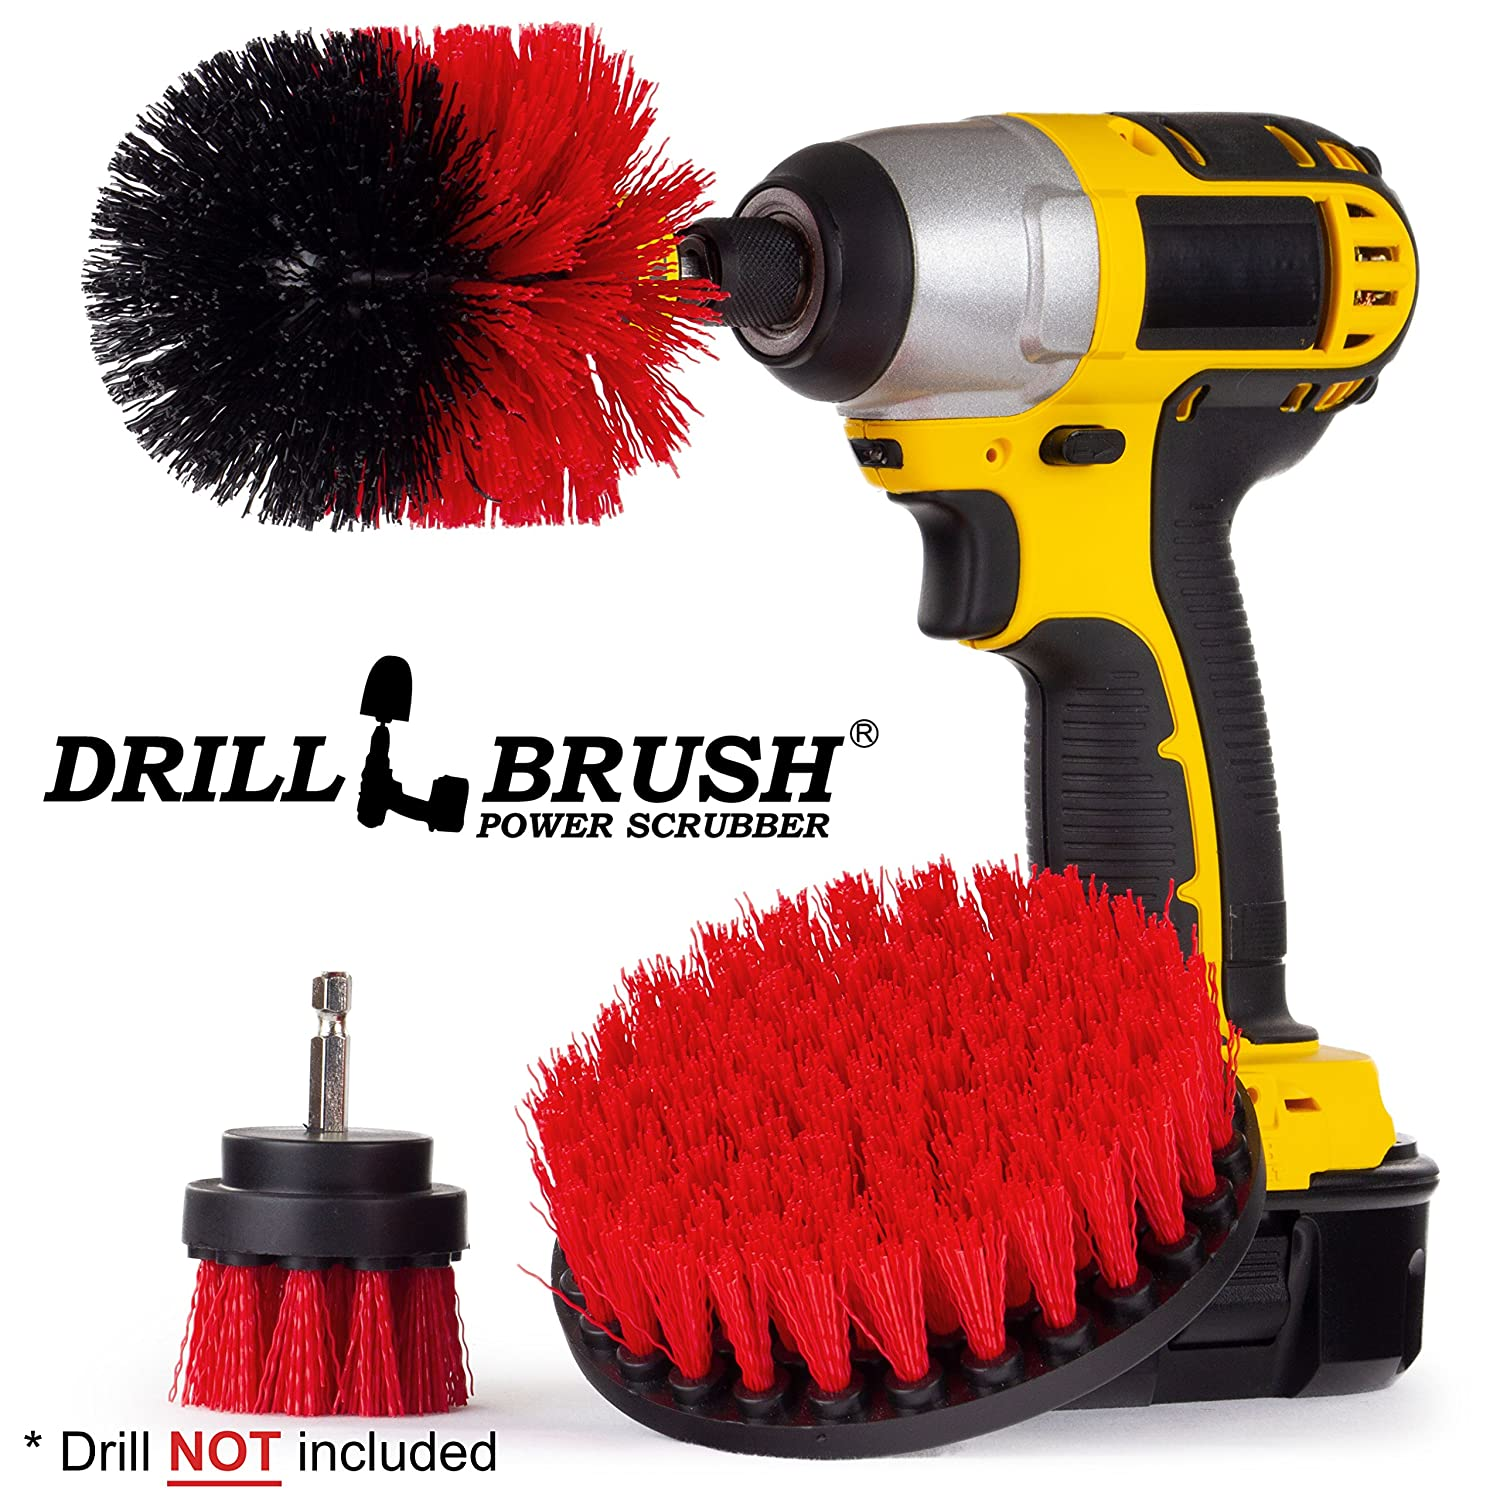 Heavy Duty Drill Powered Cleaning Brush Kit Used for Grill Cleaning and Other Heavy Duty Scrubbing Tasks Drillbrush K-S-52O-QC-DB